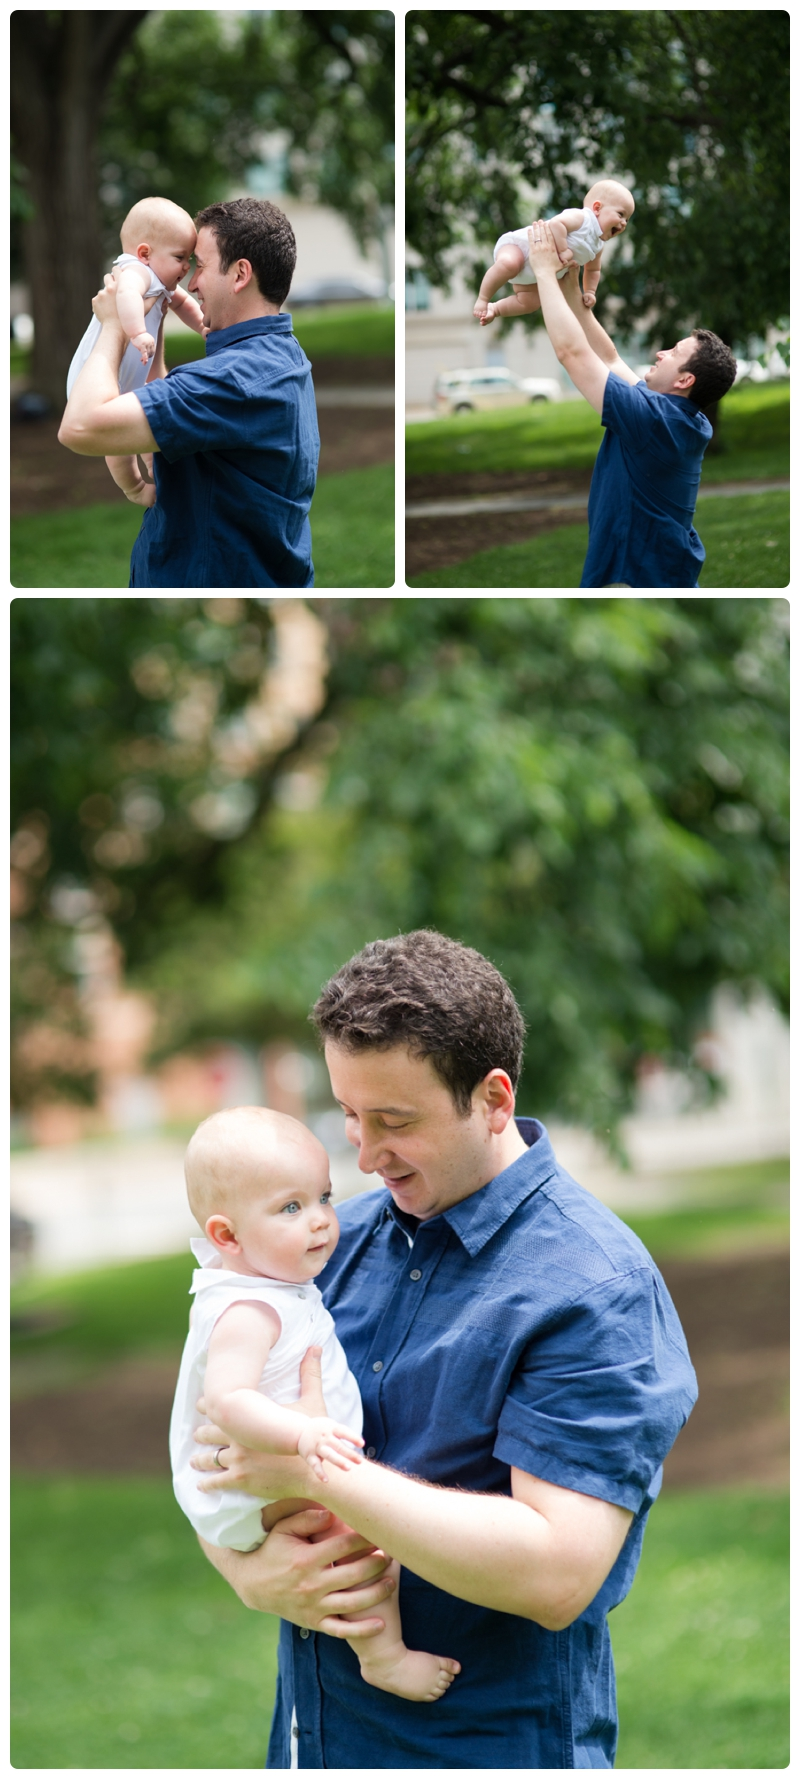 Six Month Portrait Session in Arlington Virginia by Rachael Foster Photography_0020.jpg